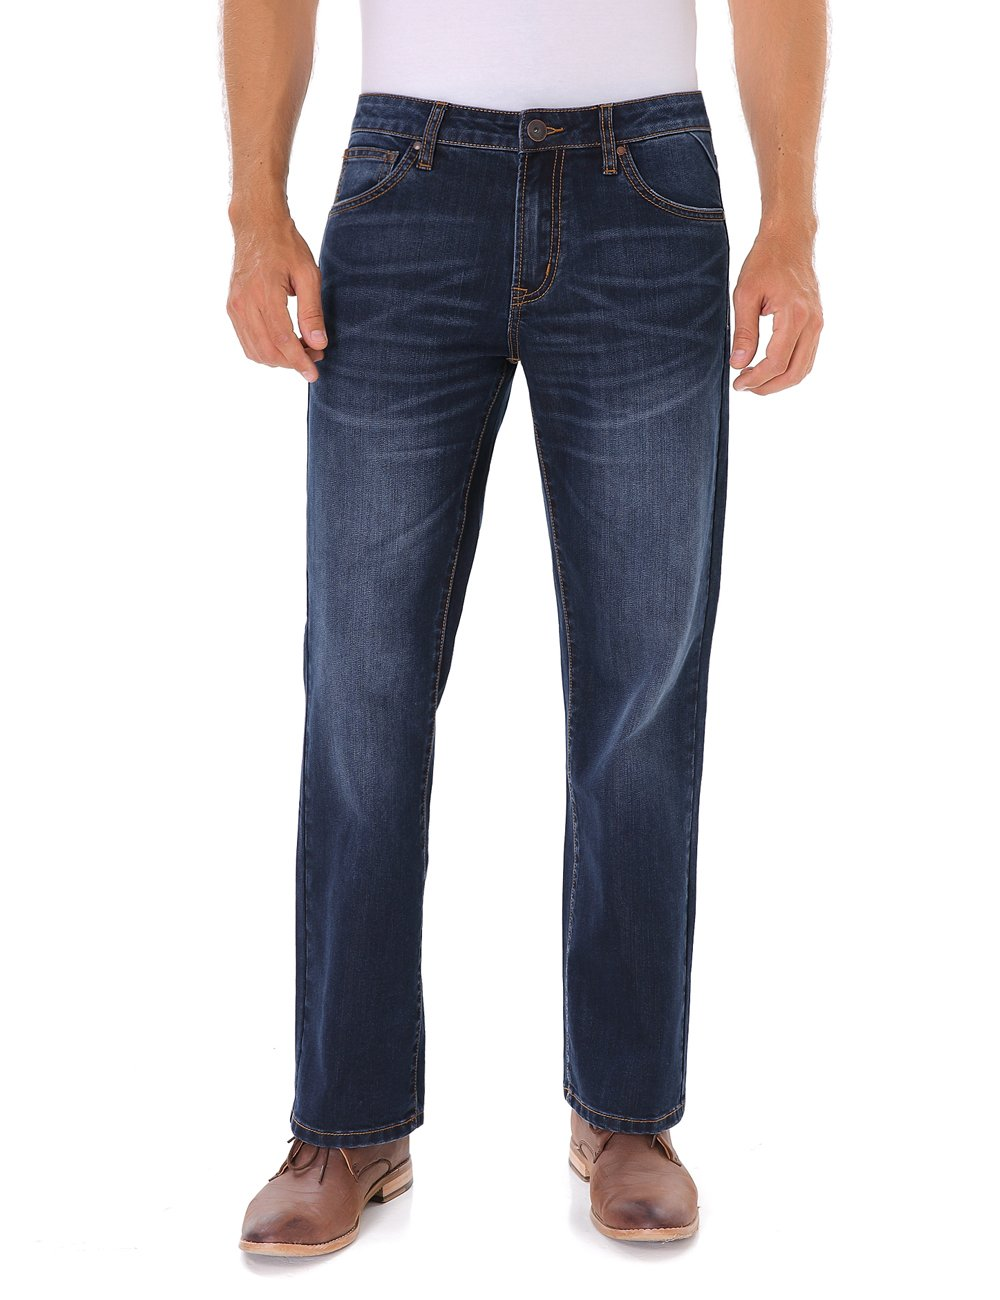 Indigo alpha Mens Regular Relaxed Stretch Straight Fit Jeans (801,W36/L34)